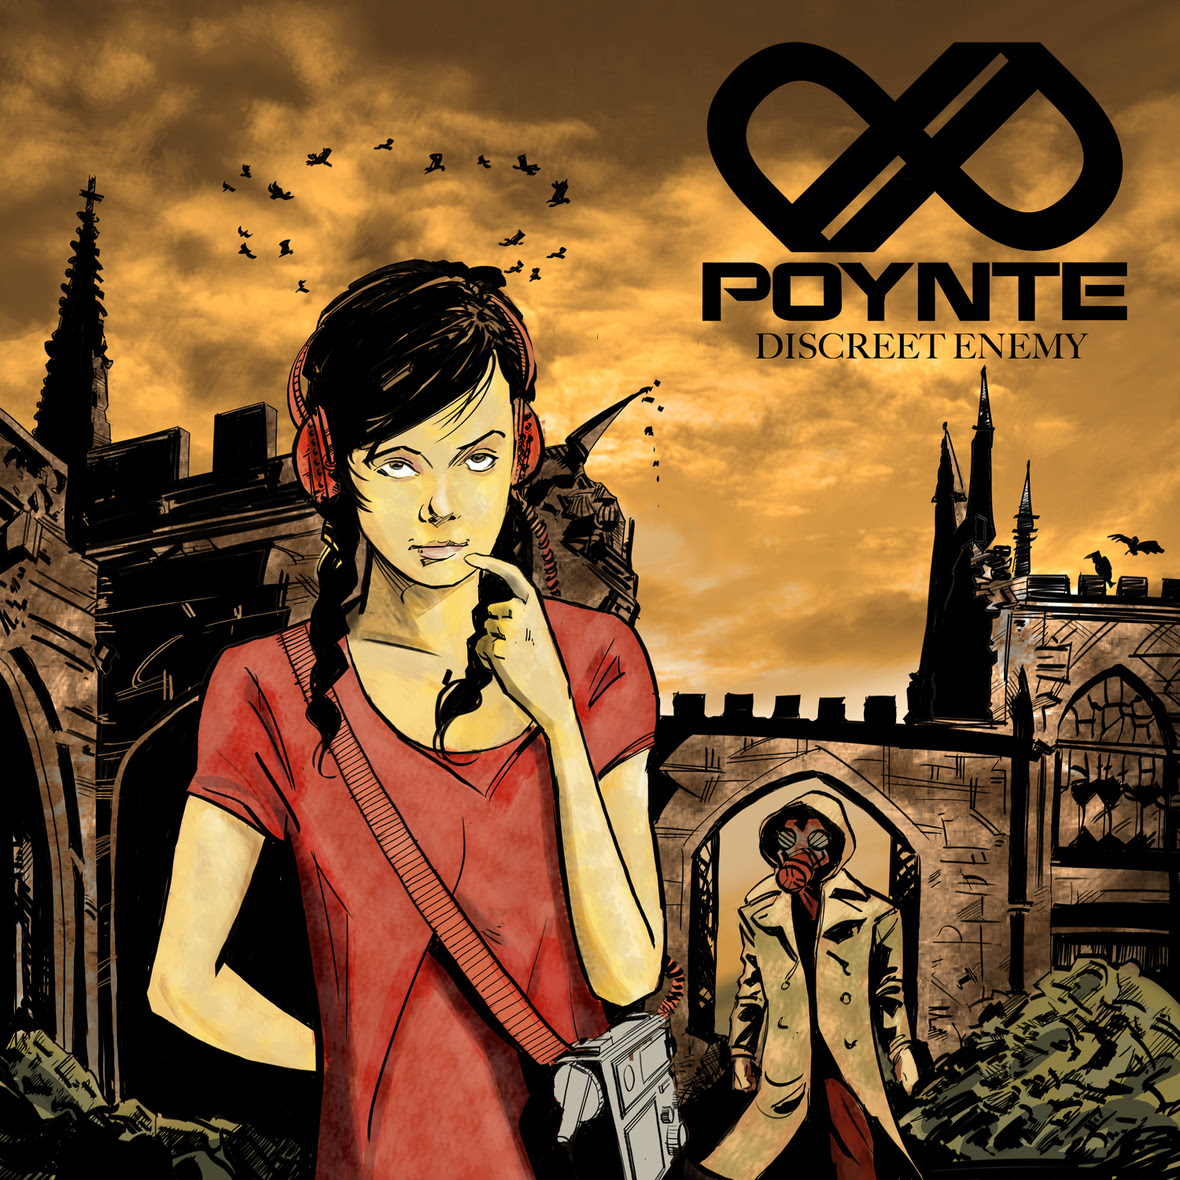 POYNTE - Discreet Enemy Art